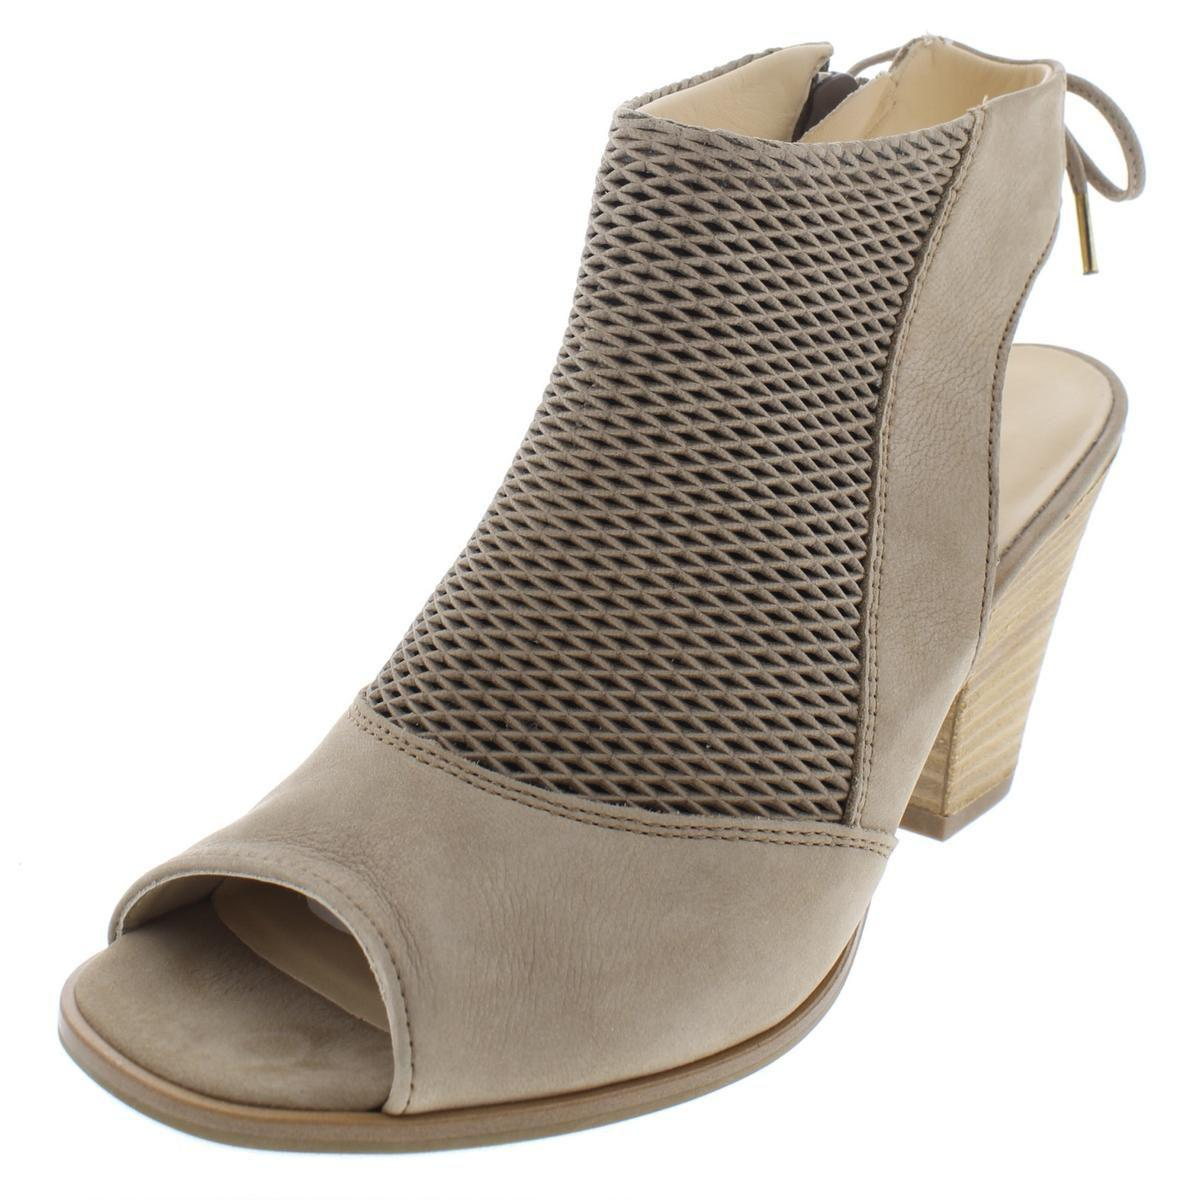 f8af9a1894a22 Lyst - Paul Green Womens Lexi Leather Open Toe Heels in Natural